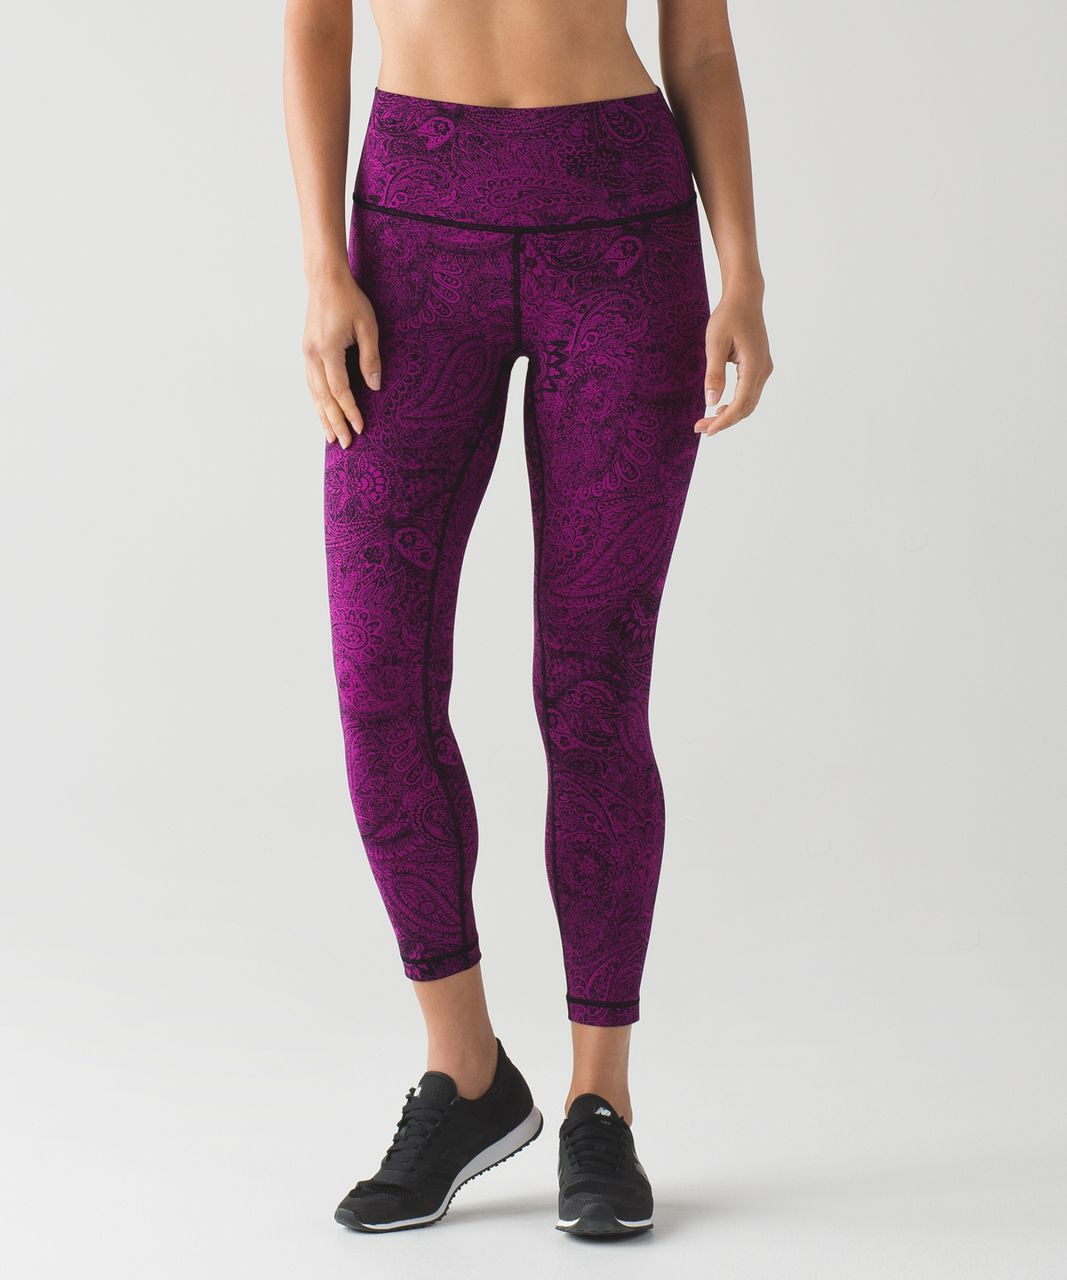 f4f012c523 Lululemon High Times Pant - Antique Paisley Deep Fuschia Black - lulu  fanatics